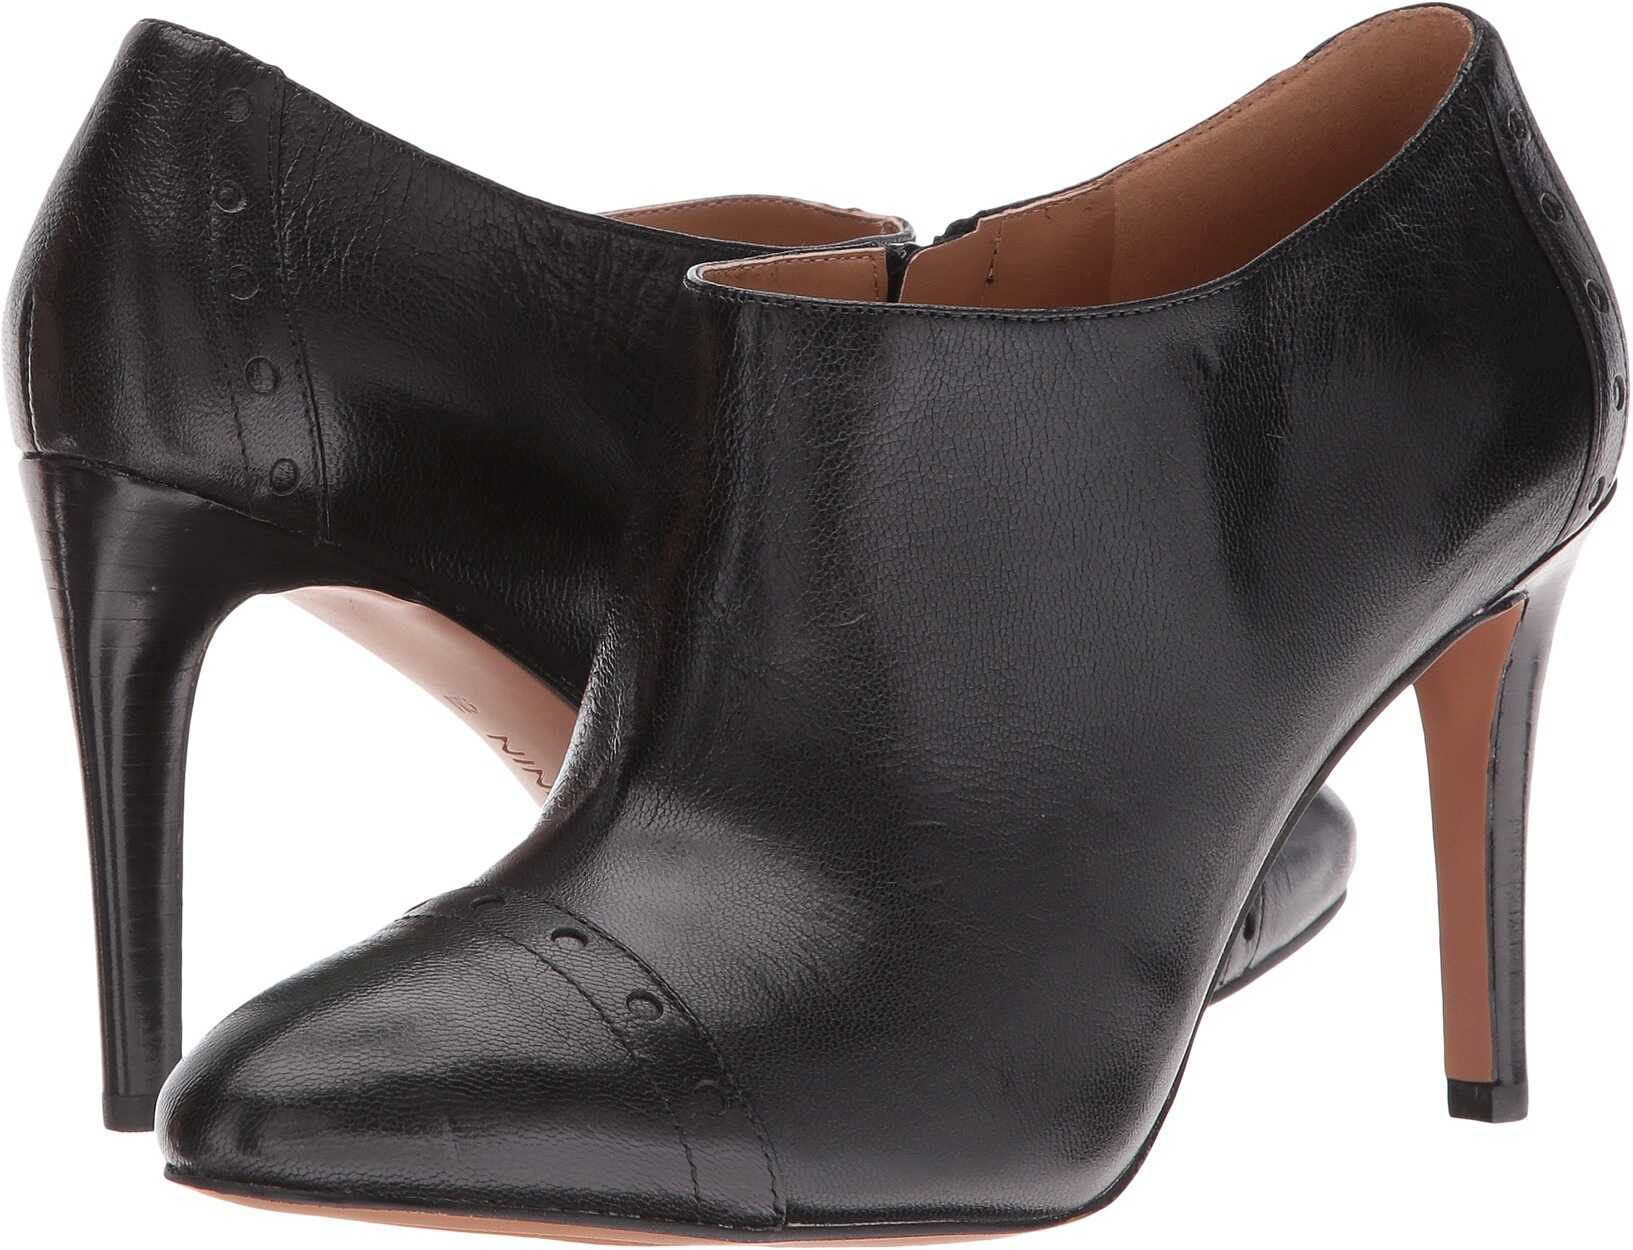 Nine West Phyllis Black Leather